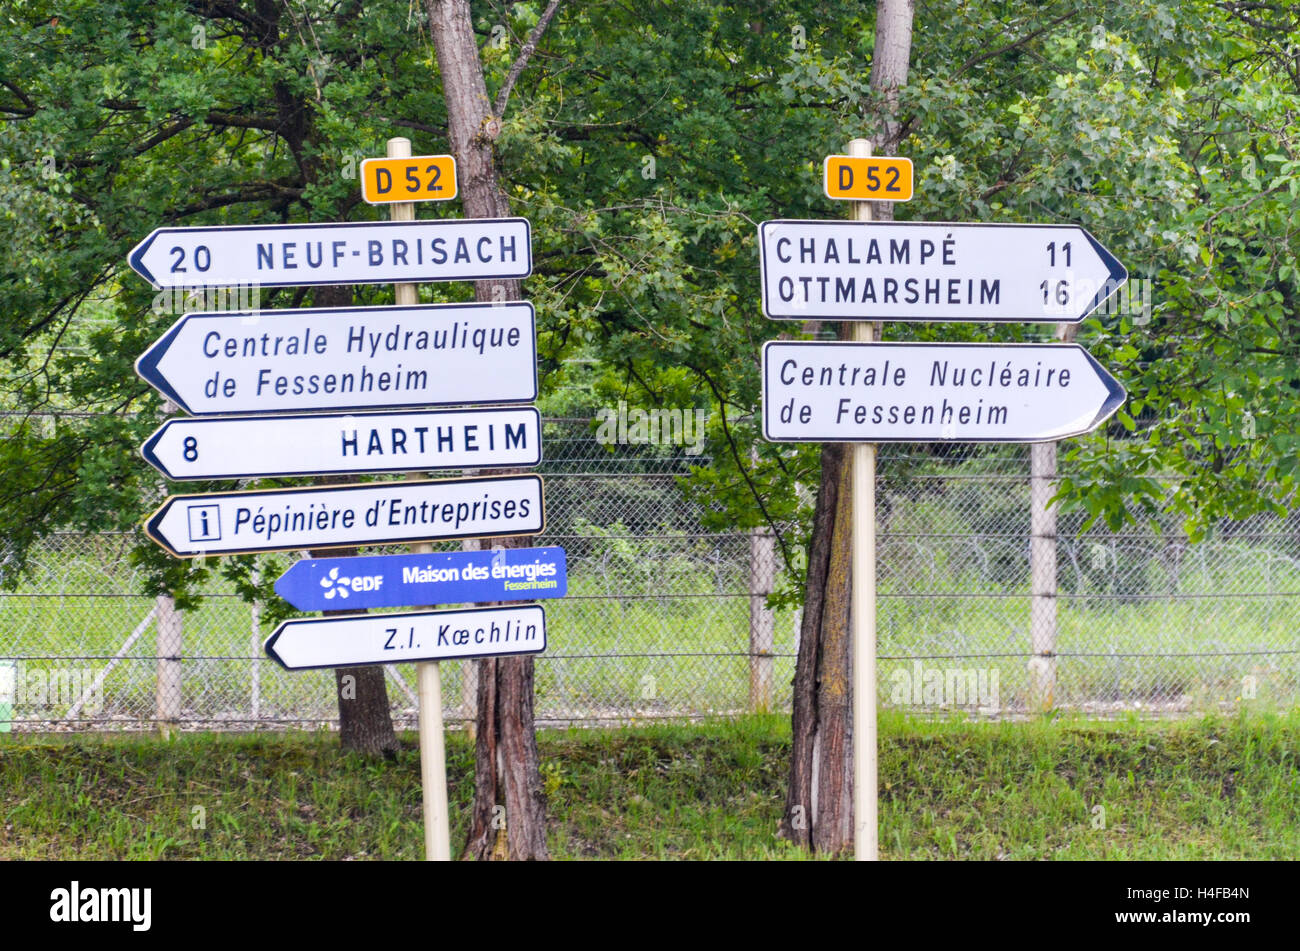 Road sign to the nuclear power plant of Fessenheim, France Stock Photo